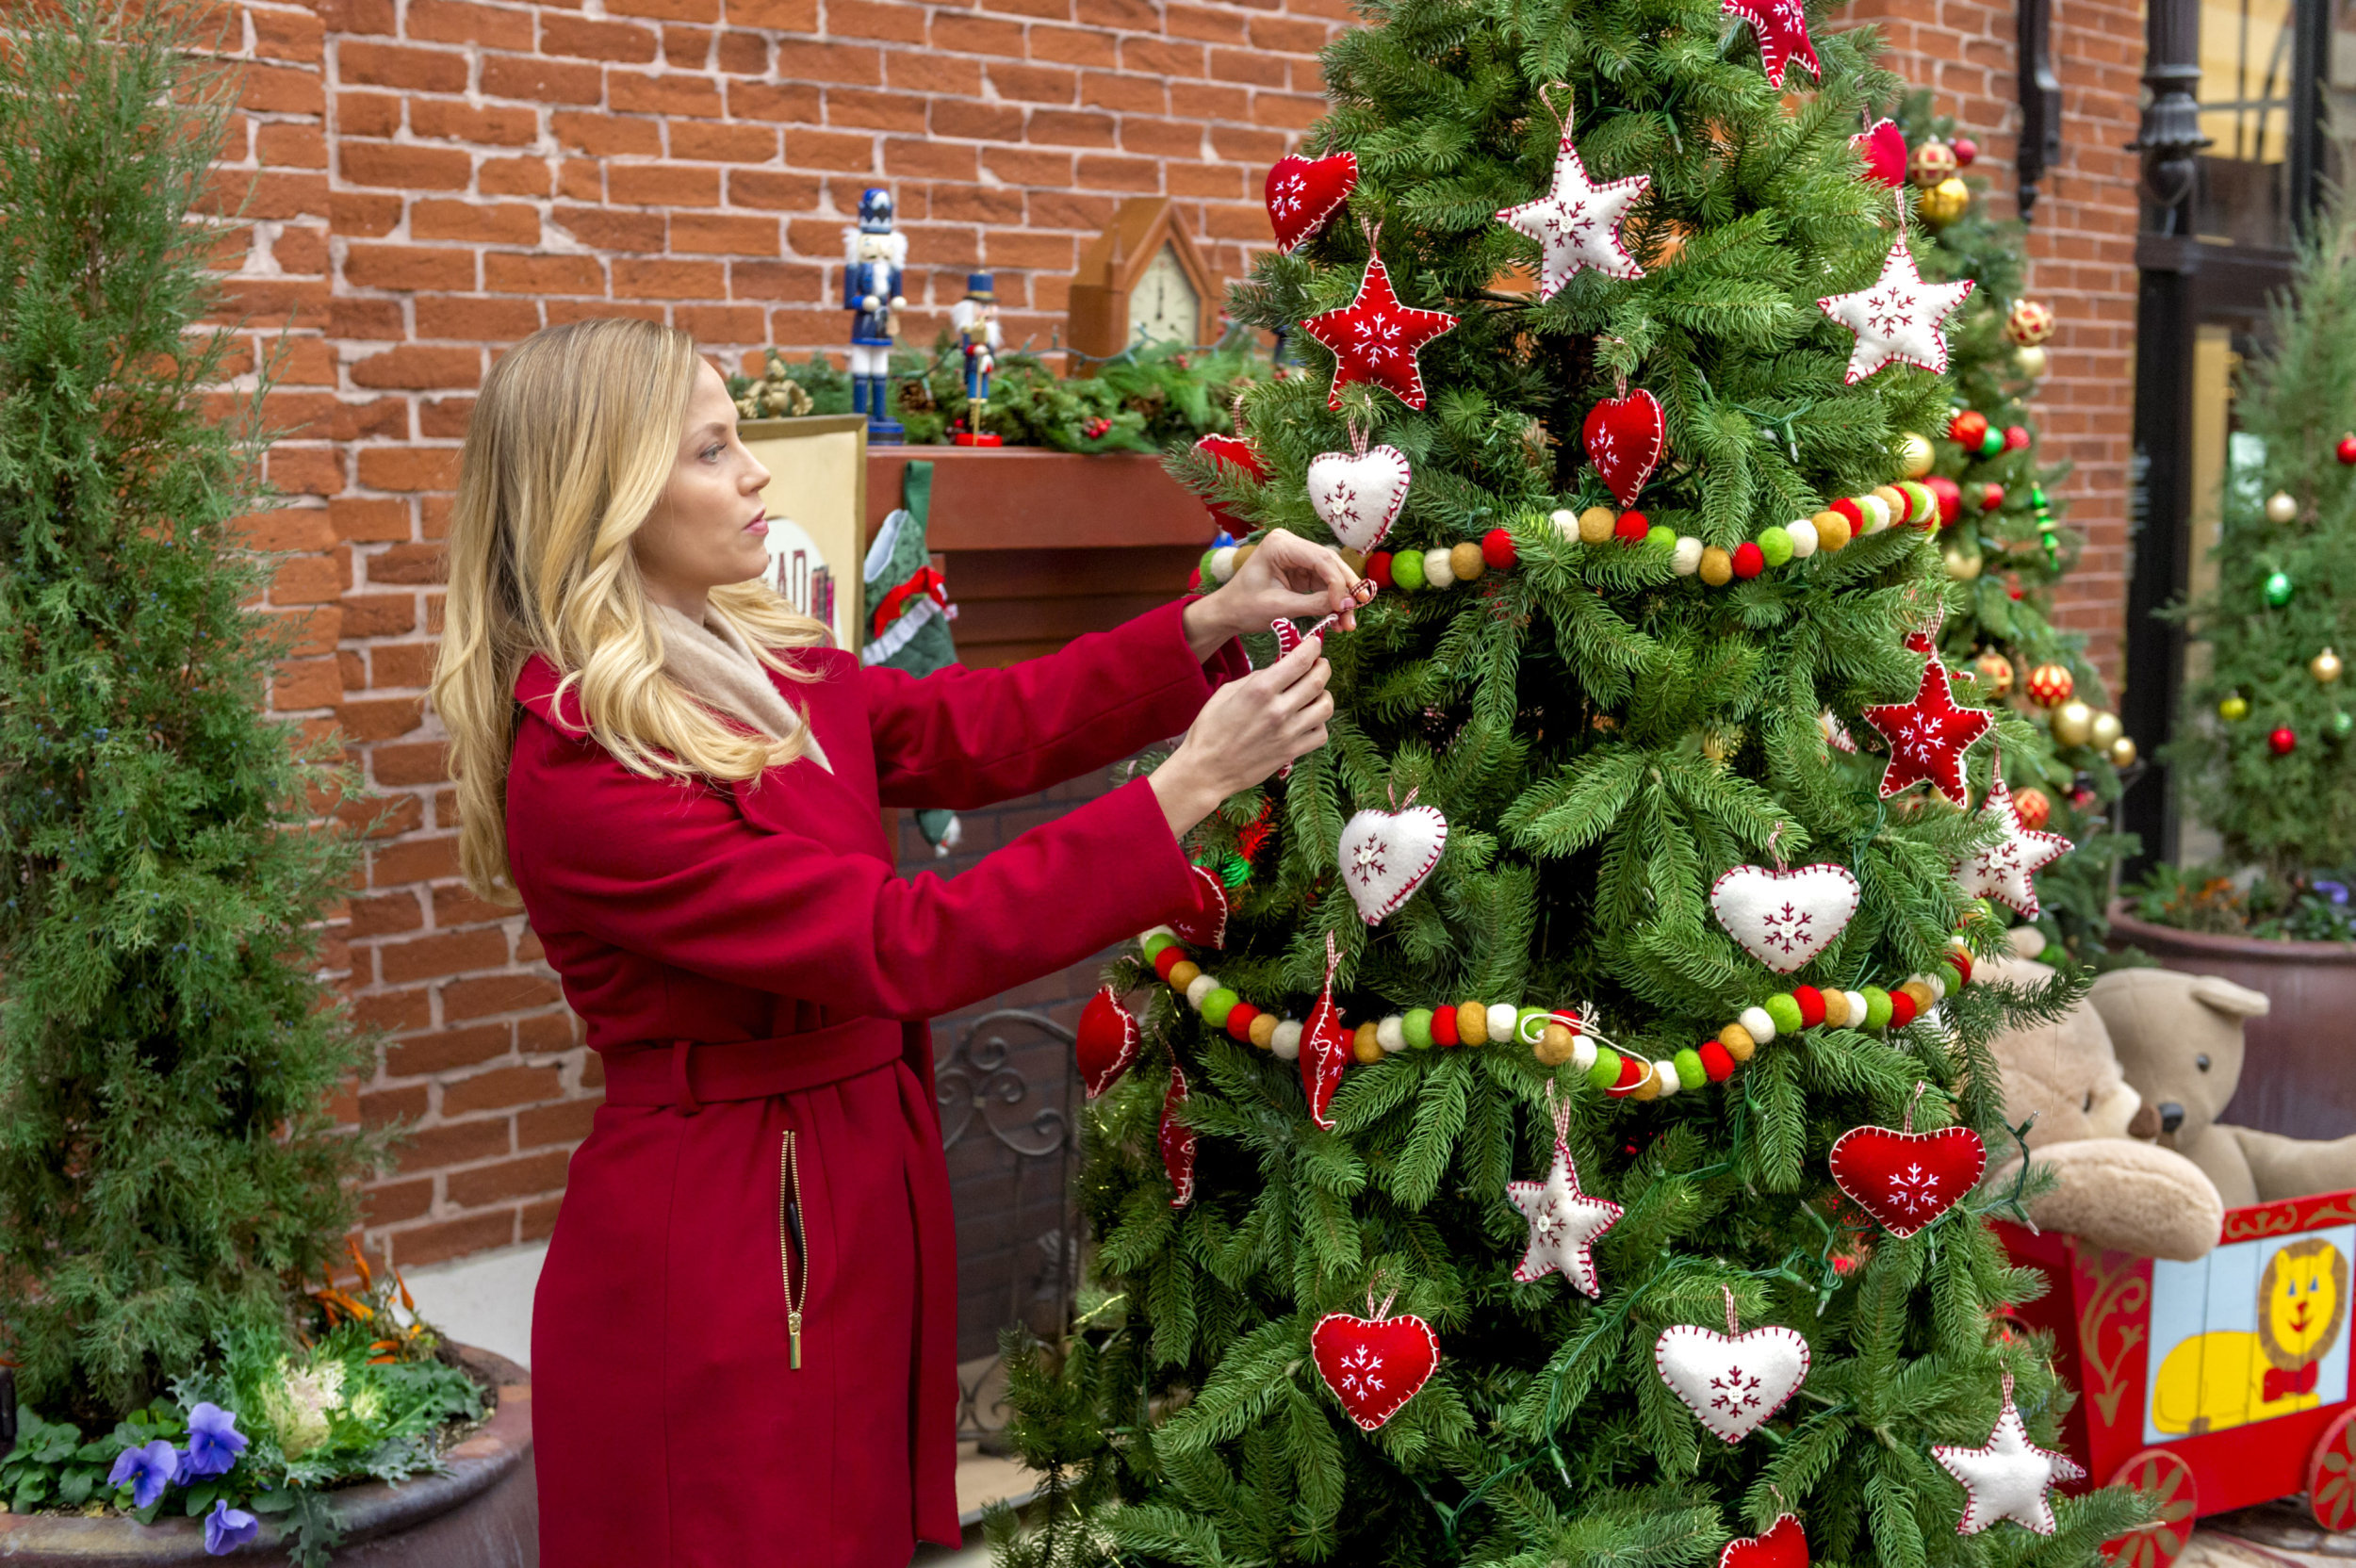 Sharing Christmas Hallmark.About The Movie Sharing Christmas Hallmark Channel